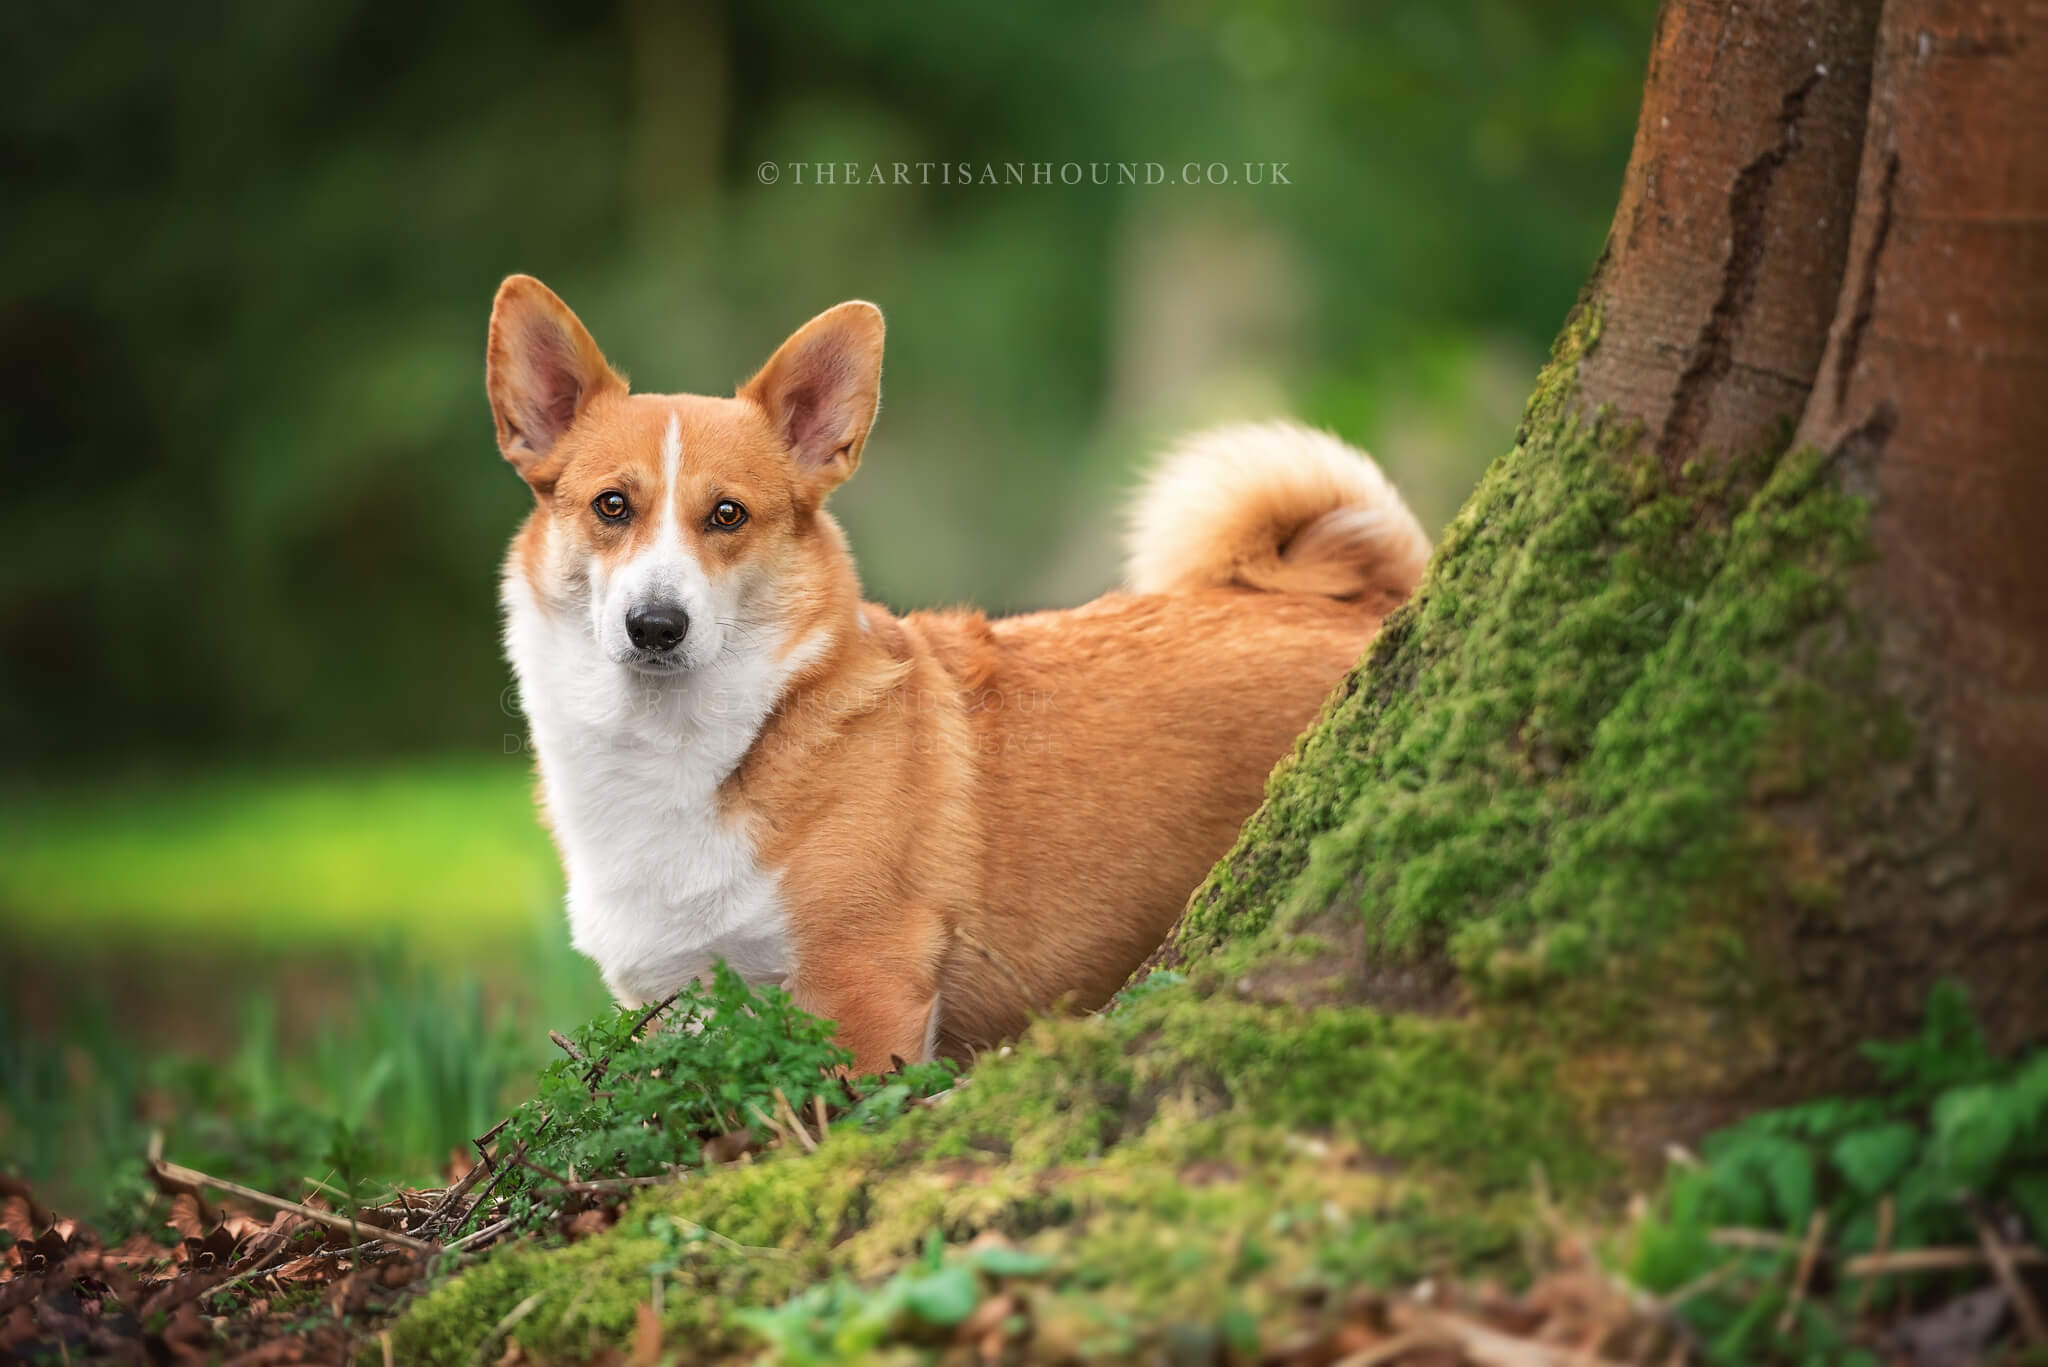 Red and white corgi standing behind tree